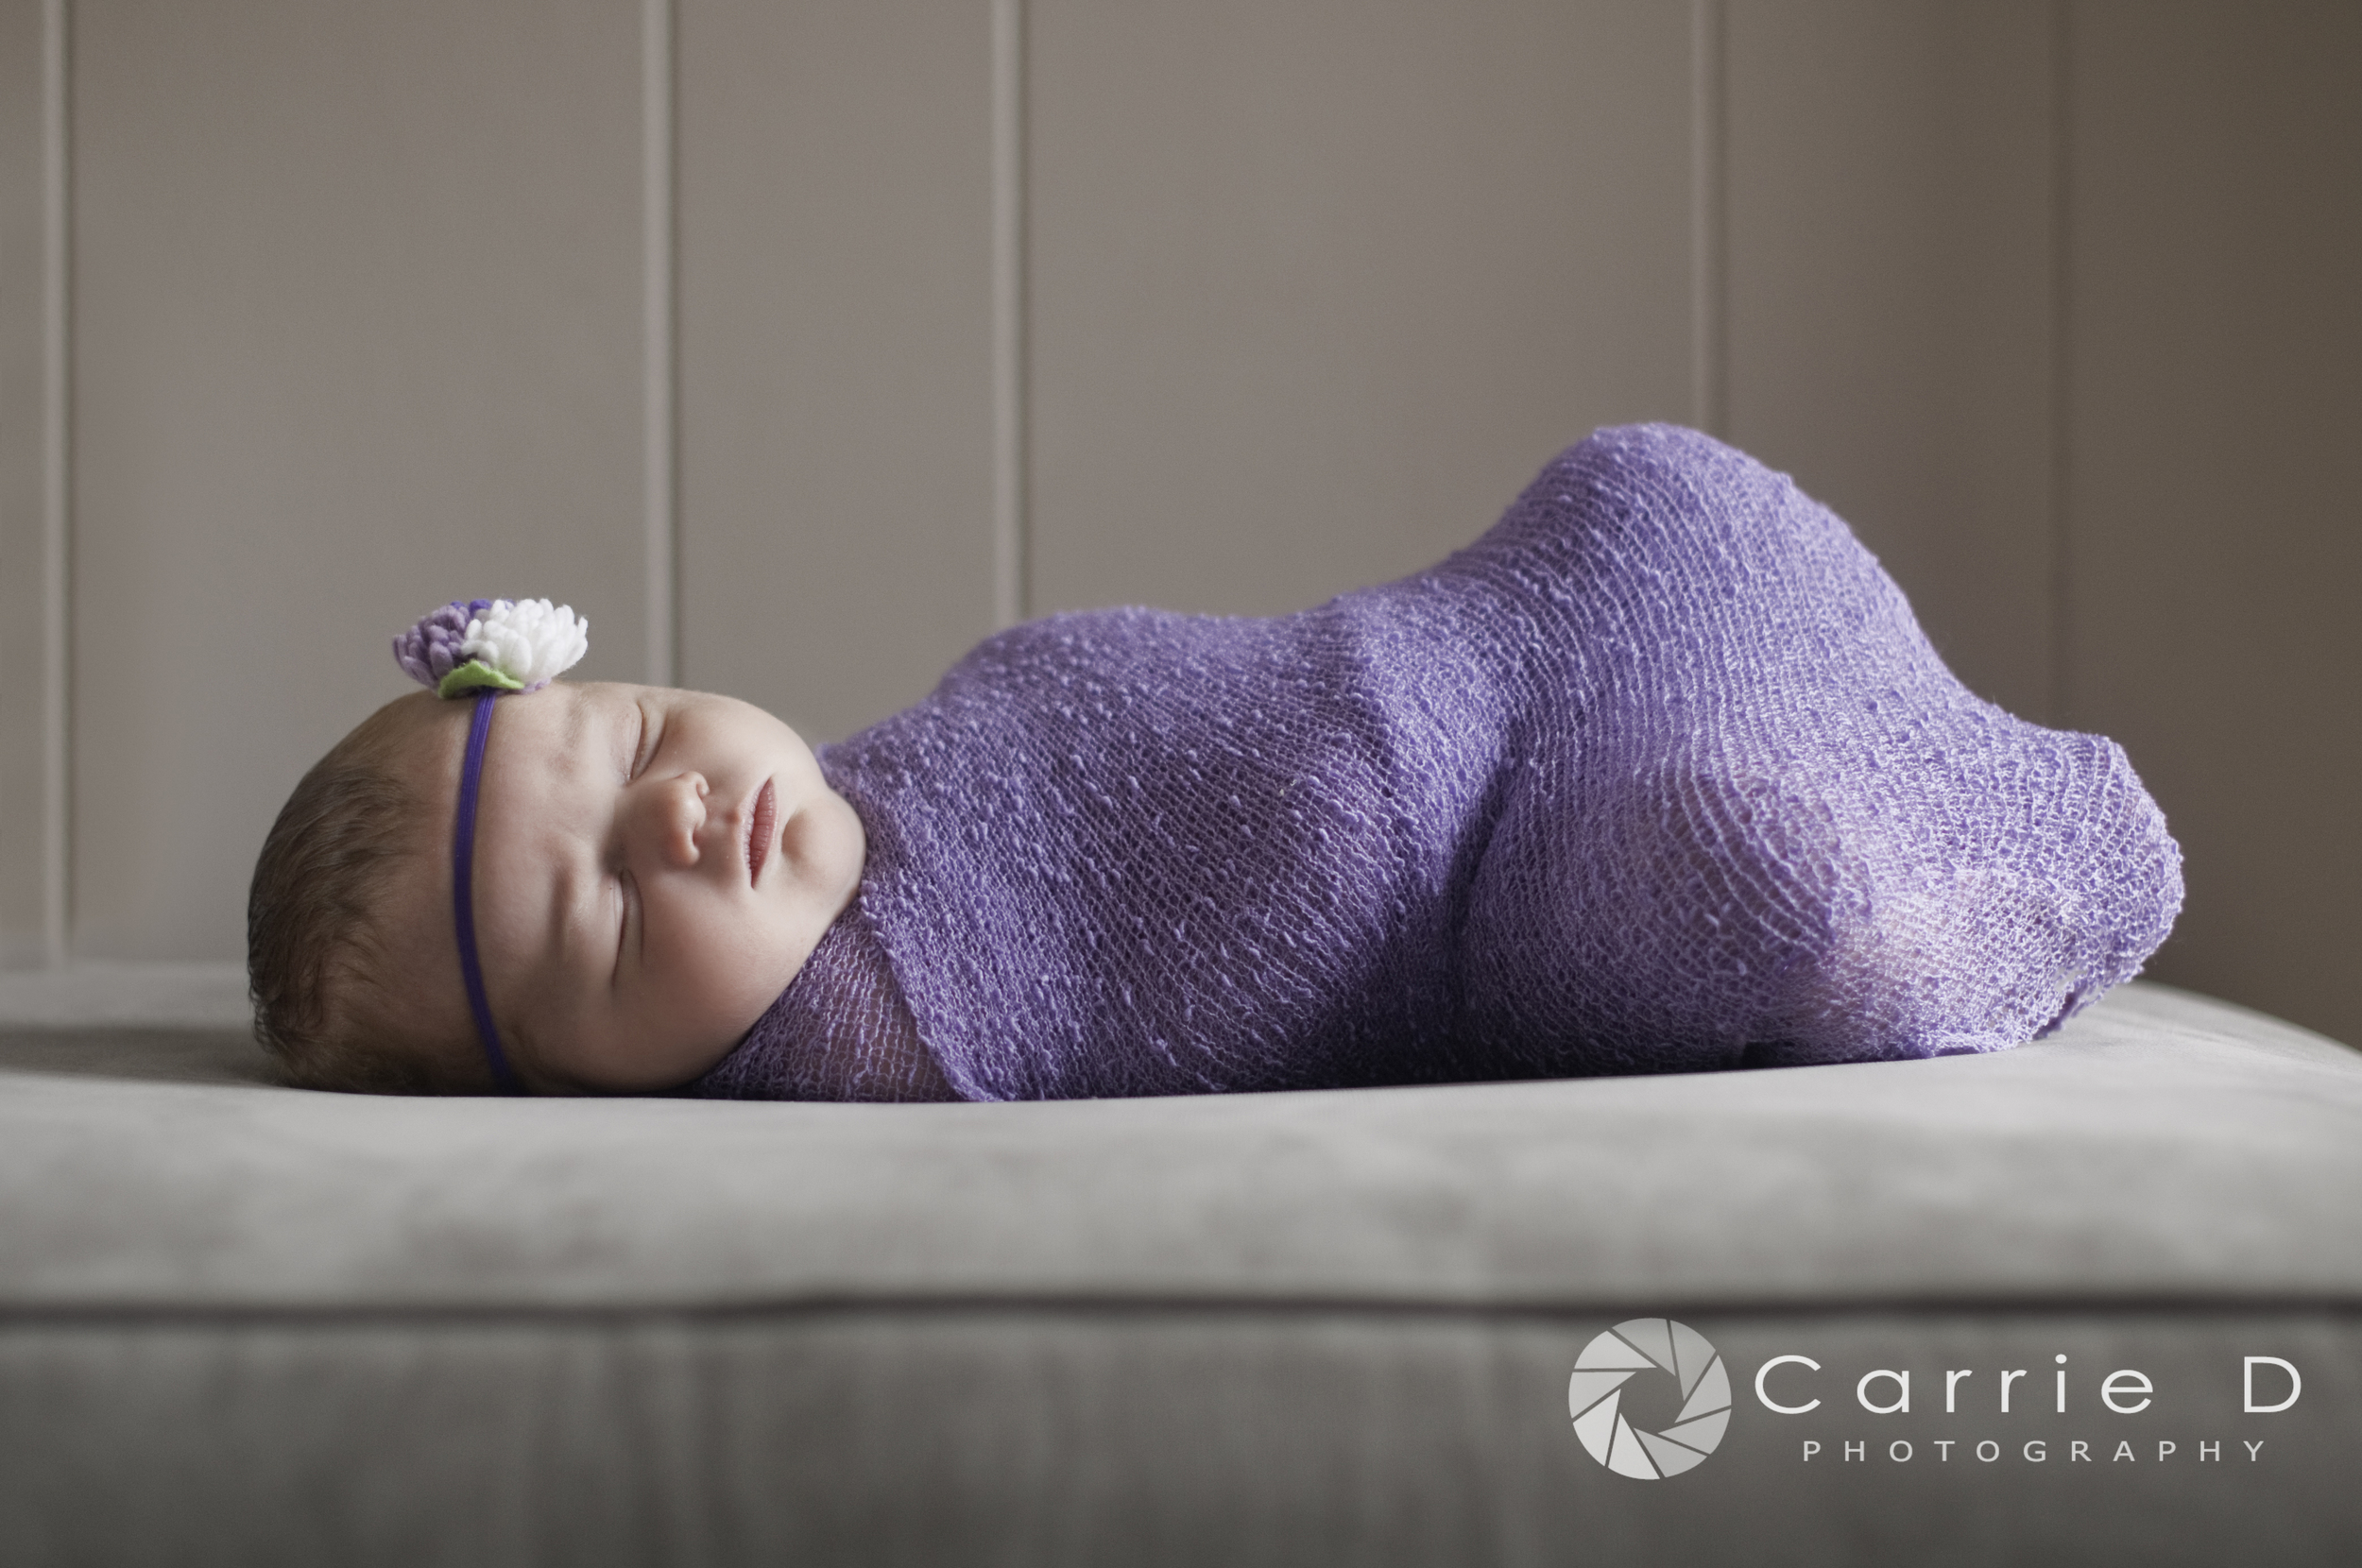 Manchester Newborn Photographer - Manchester Family Photographer - Manchester Child Photographer - Natural Light Newborn Photography - Maryland Natural Light Newborn Photographer - Natural Light Photography